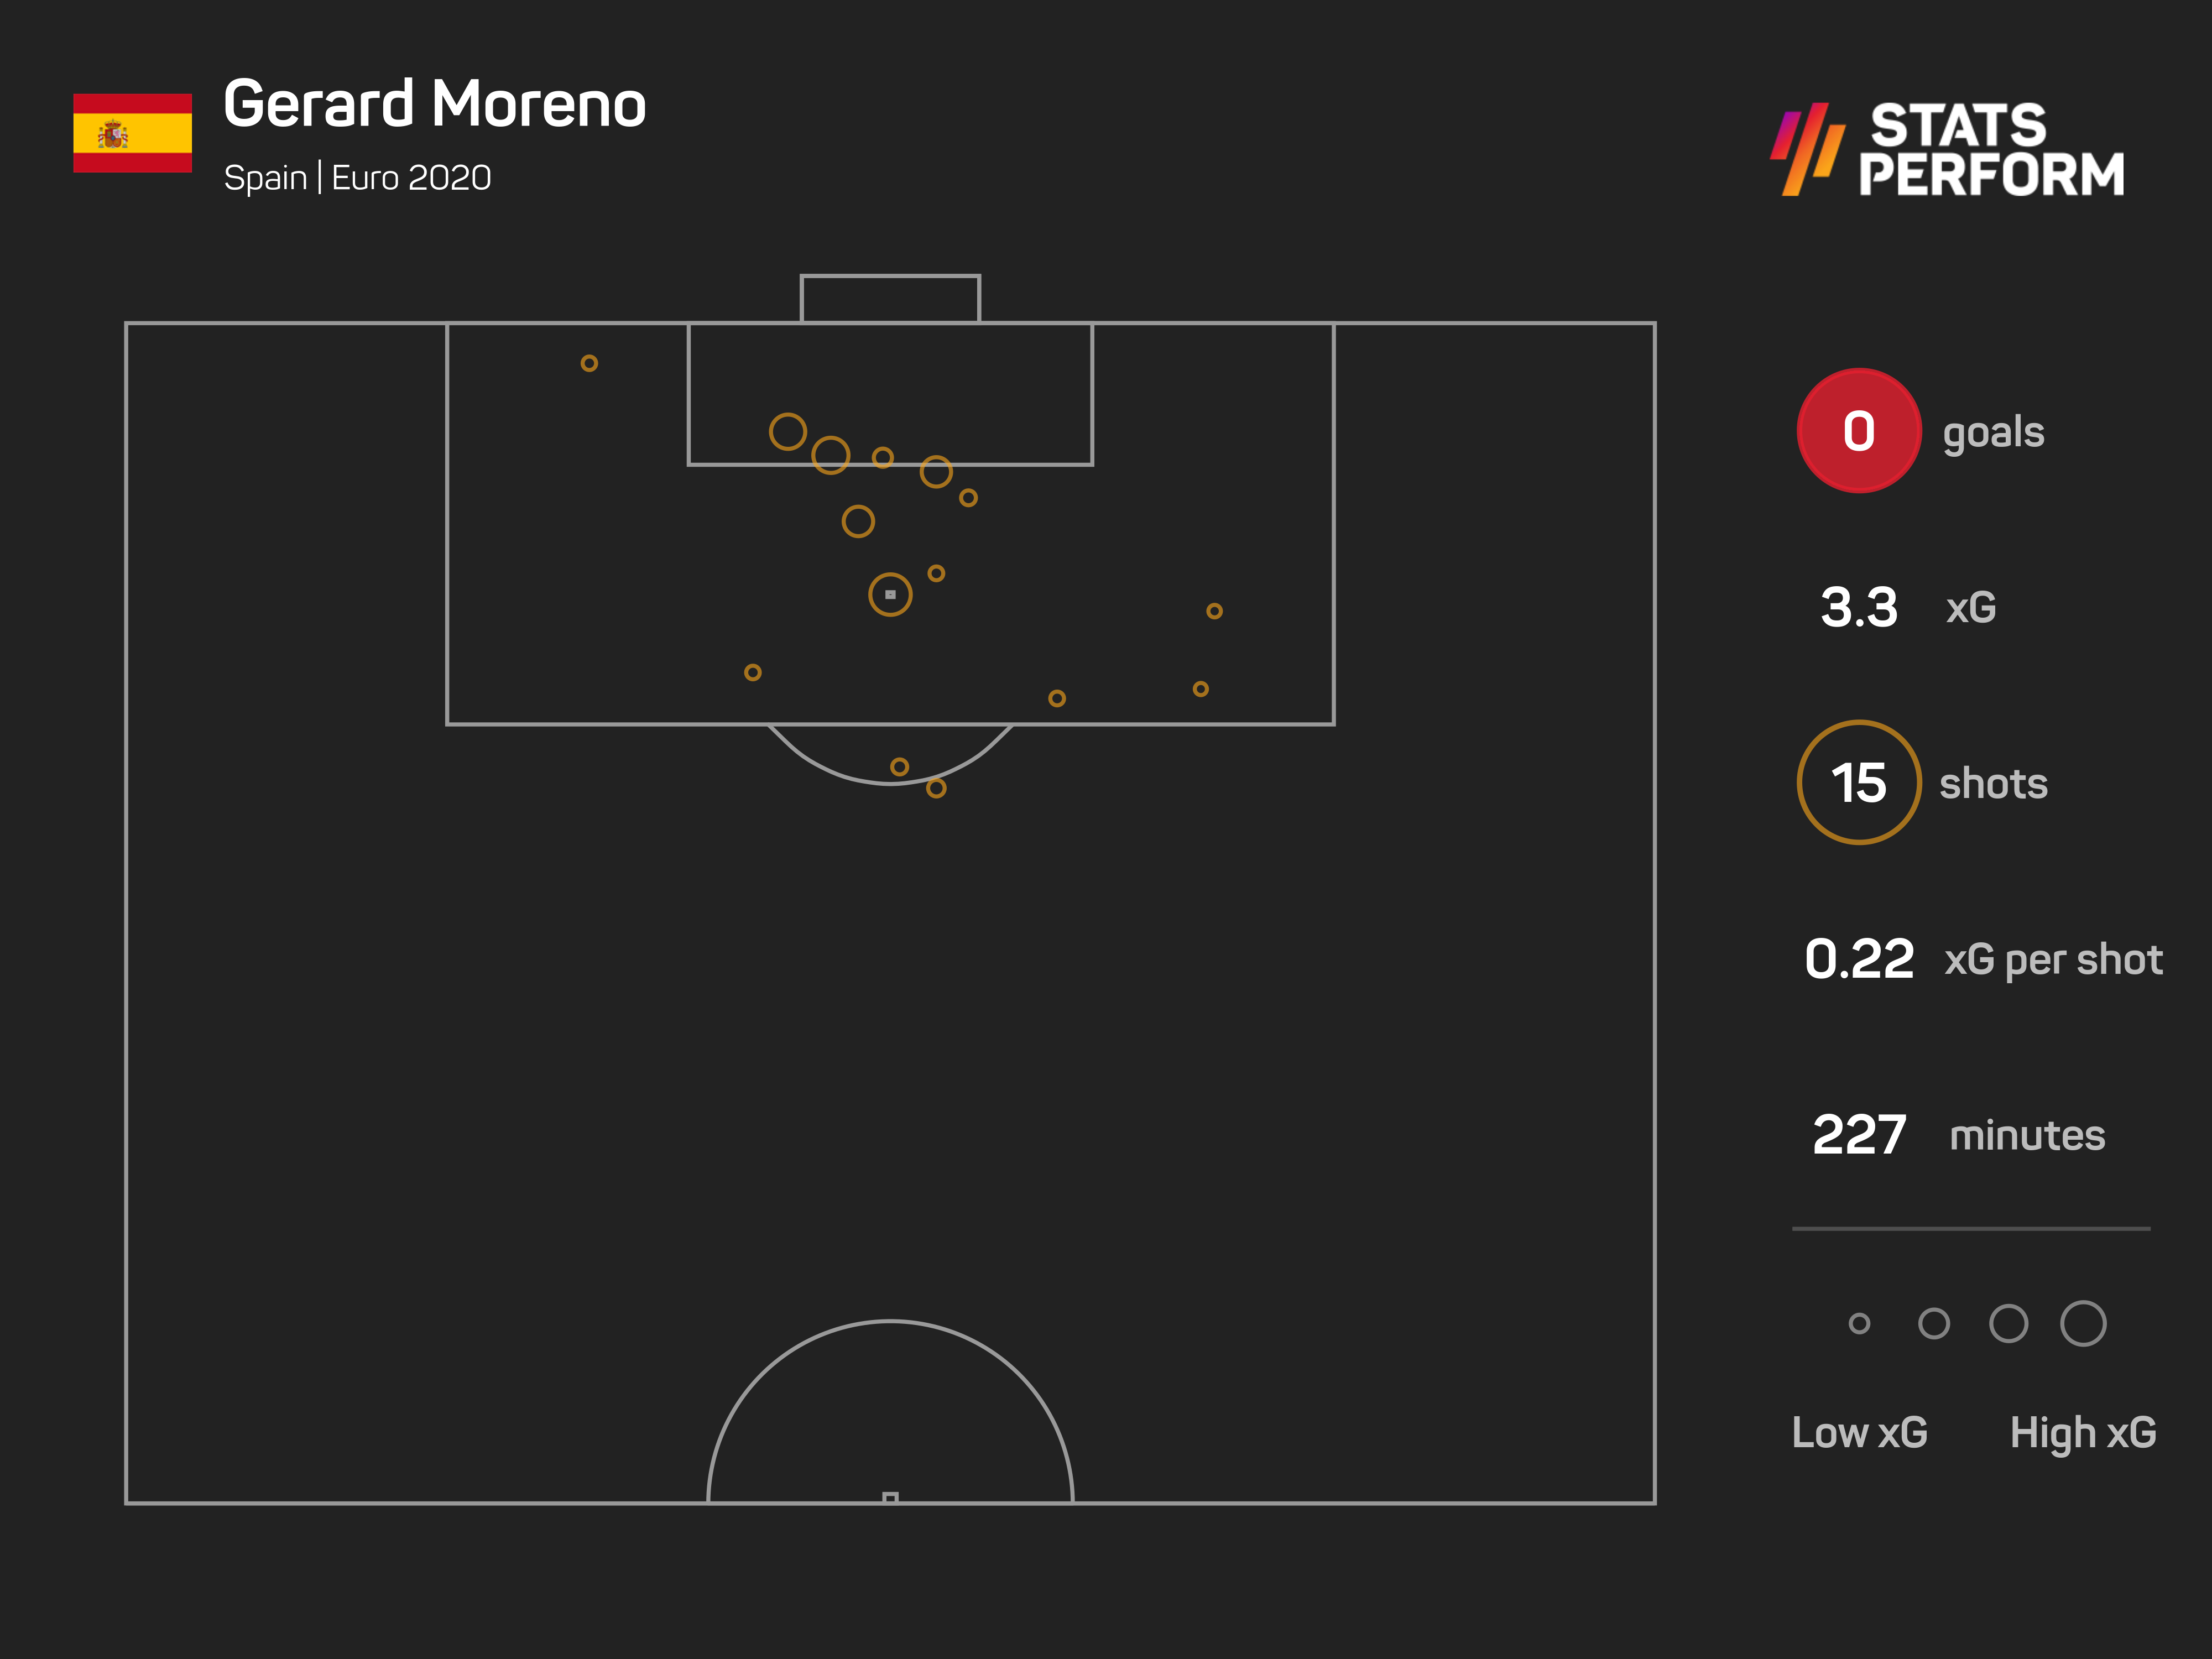 Gerard Moreno's xG of 3.3 is the most of all players yet to score at Euro 2020